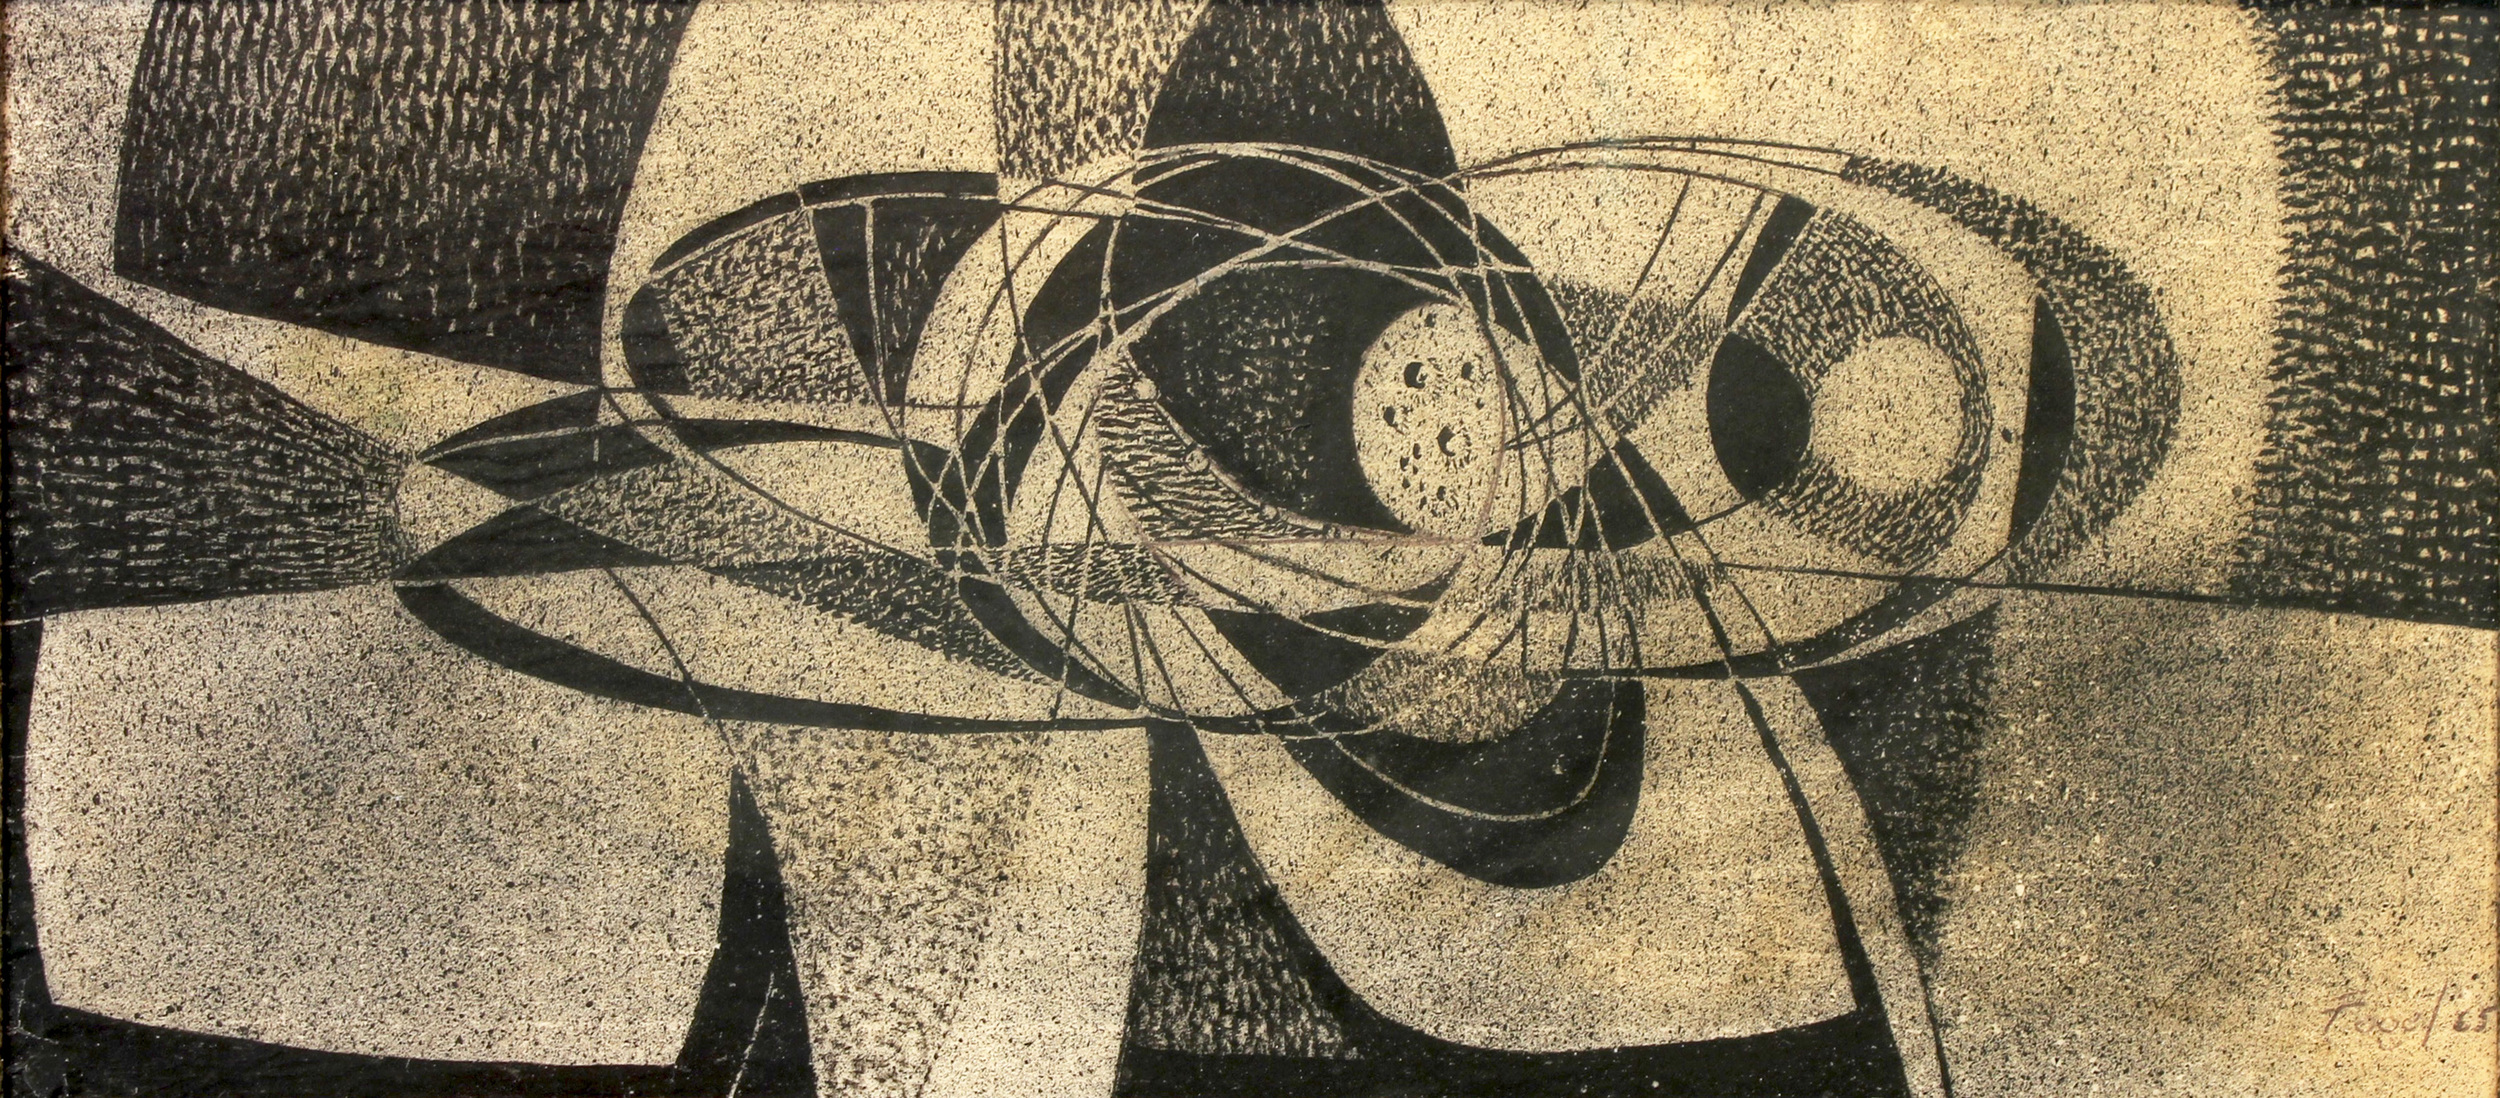 fogel_space_mural_study.jpg